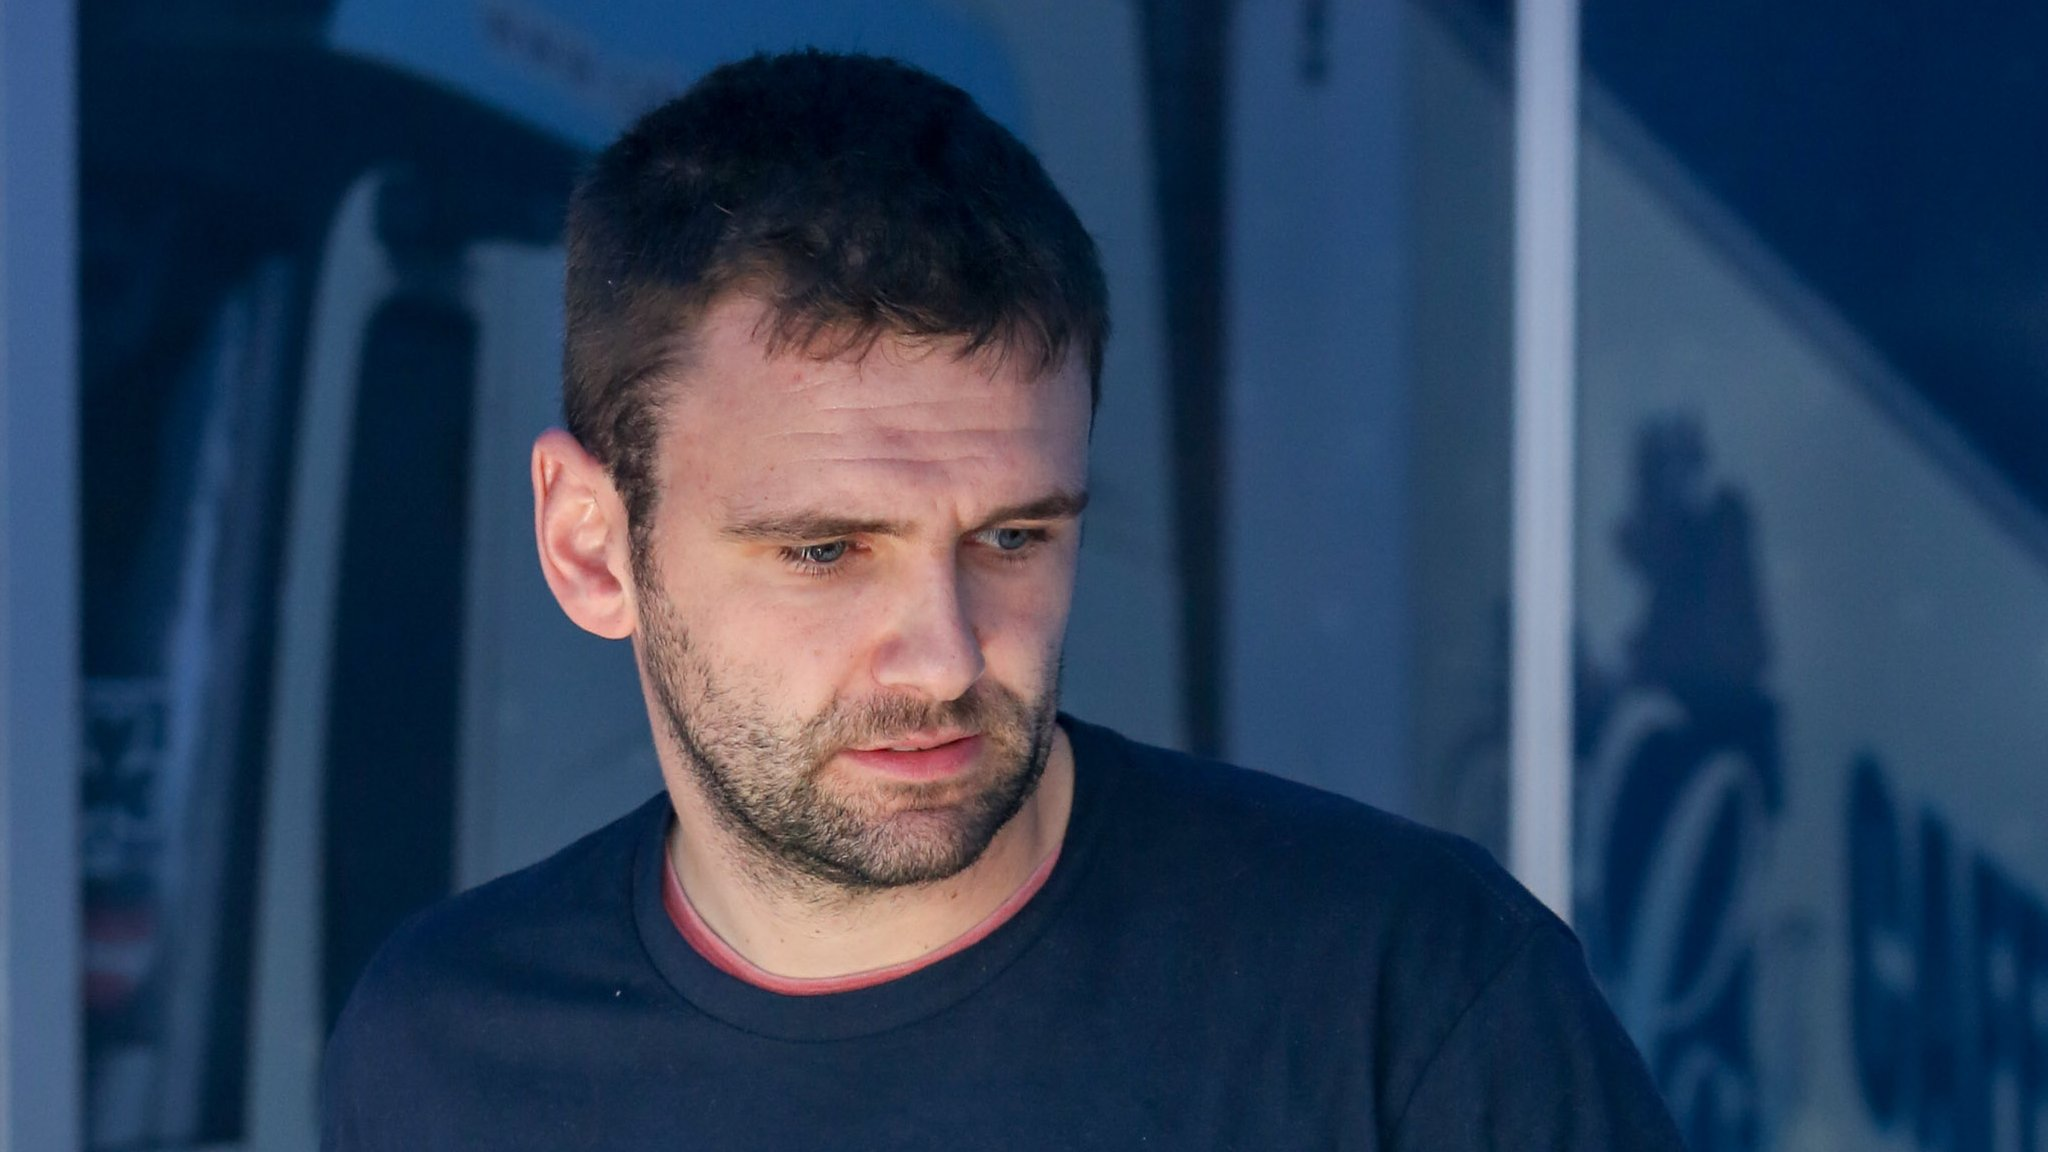 Isle of Man TT: William Dunlop set to compete after injury